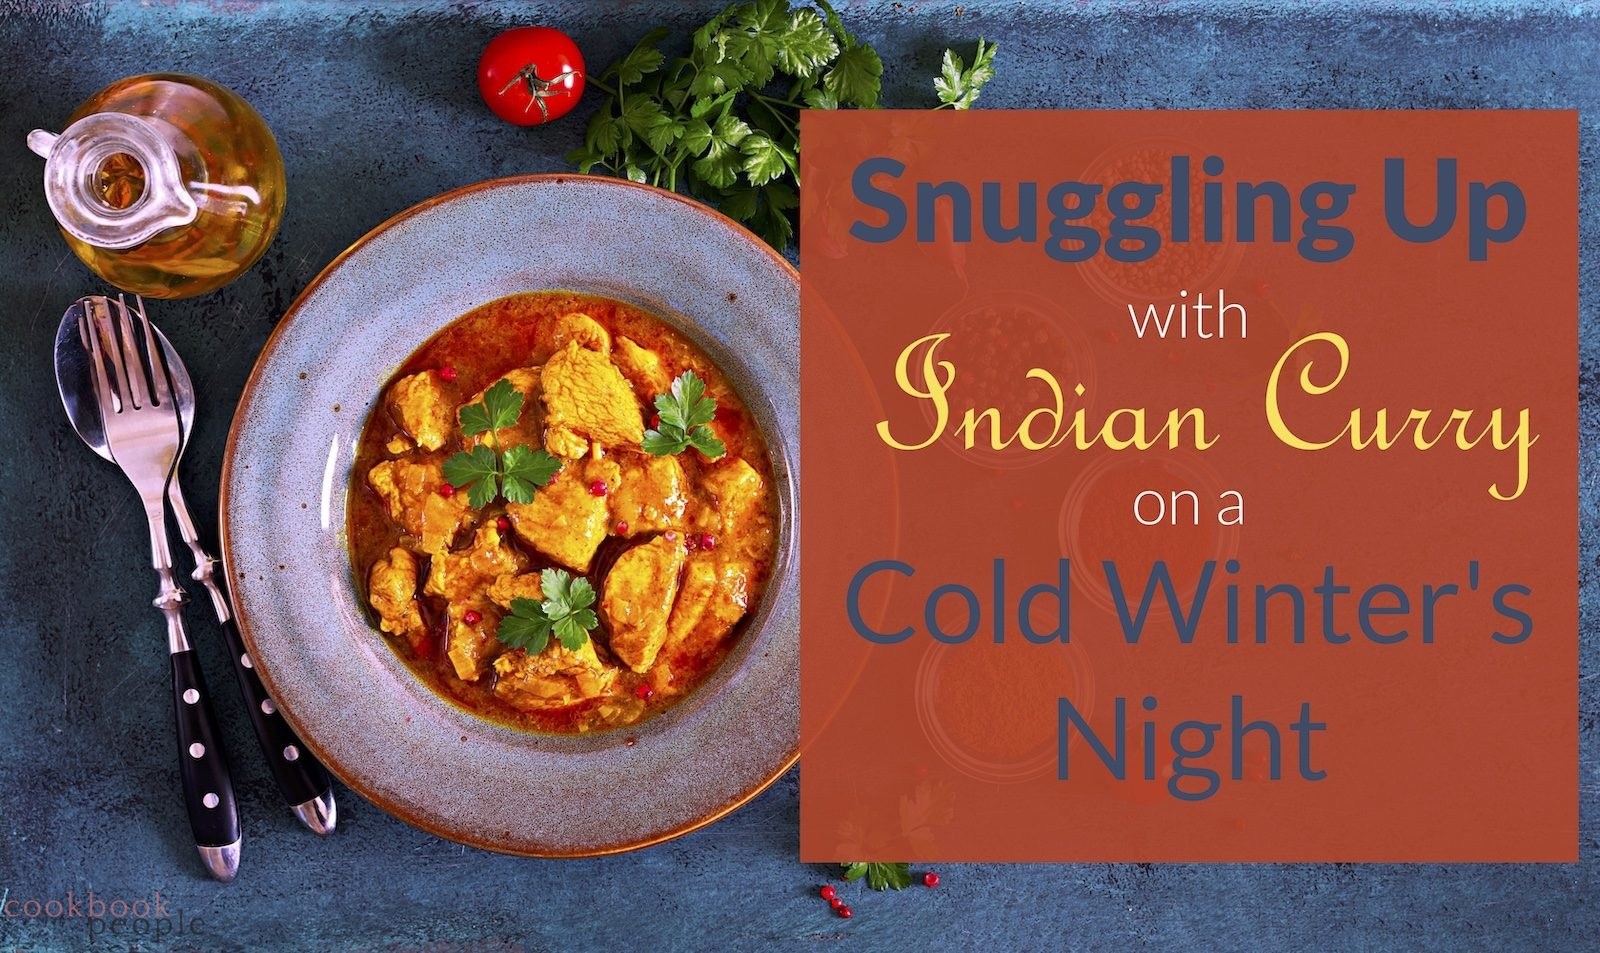 """Plate of chicken curry with tomato and coriander on blue bakckground overlaid with text """"Snuggling Up with Indian Curry on a Cold Winter's Night"""""""